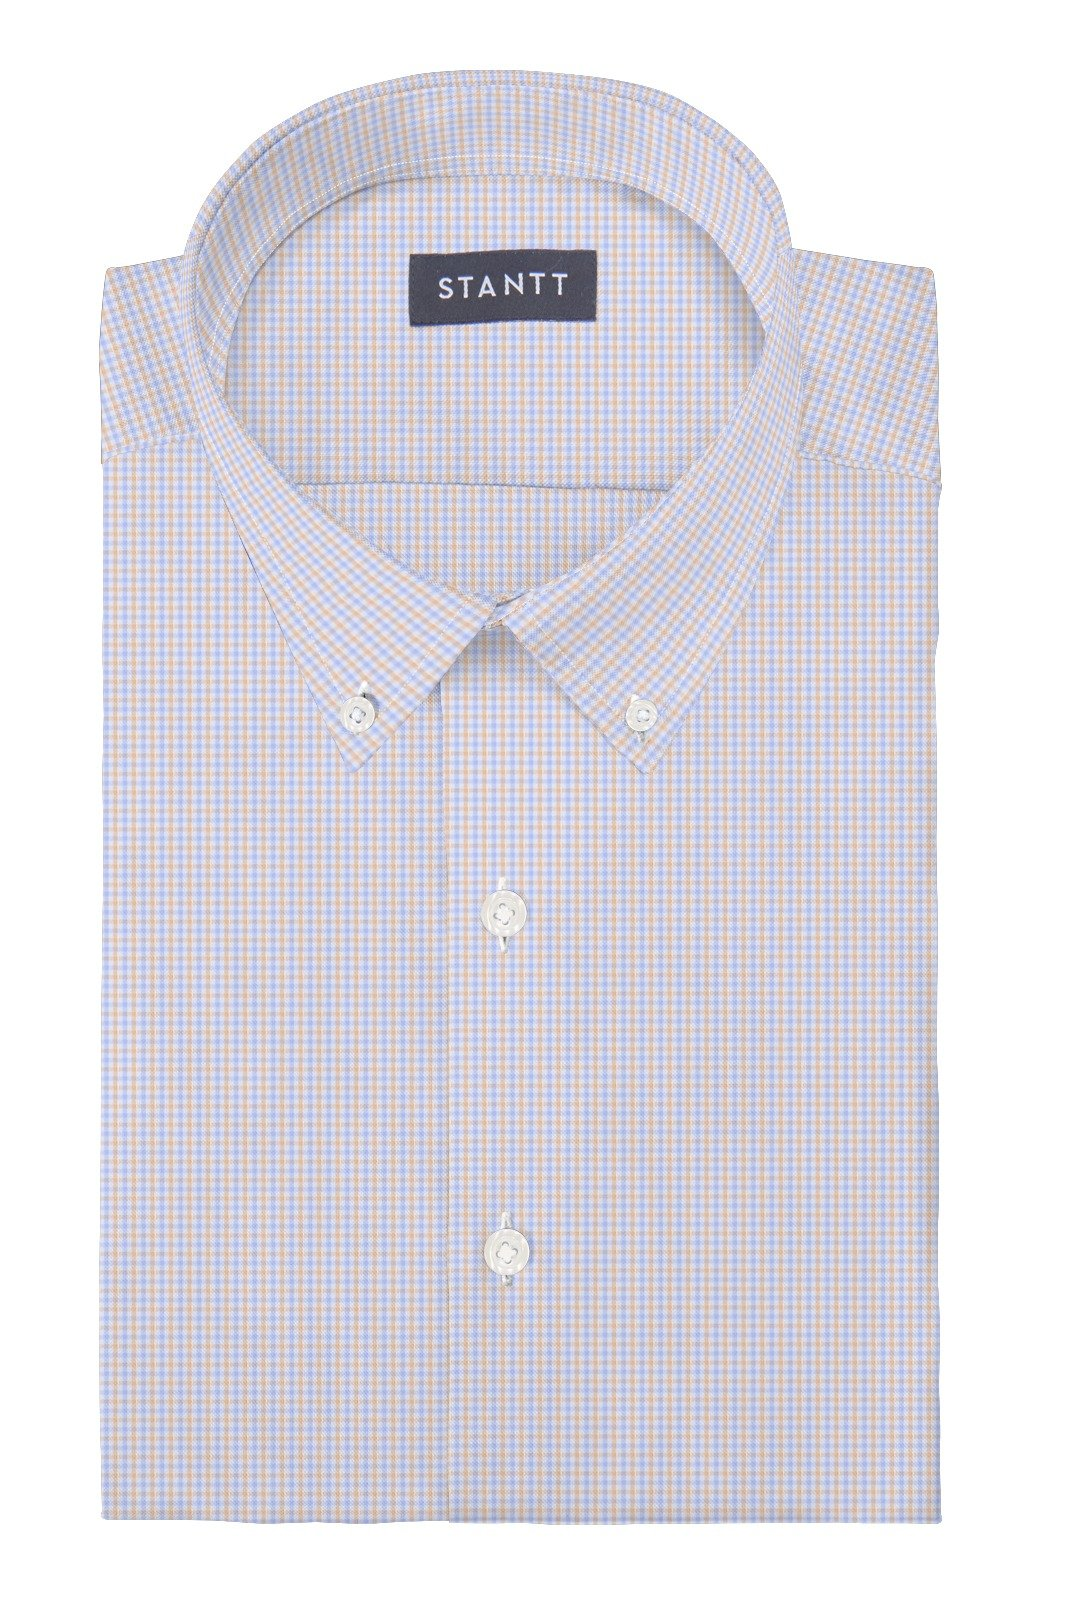 Matrix Sky Blue and Melon Tattersall: Button-Down Collar, Barrel Cuff